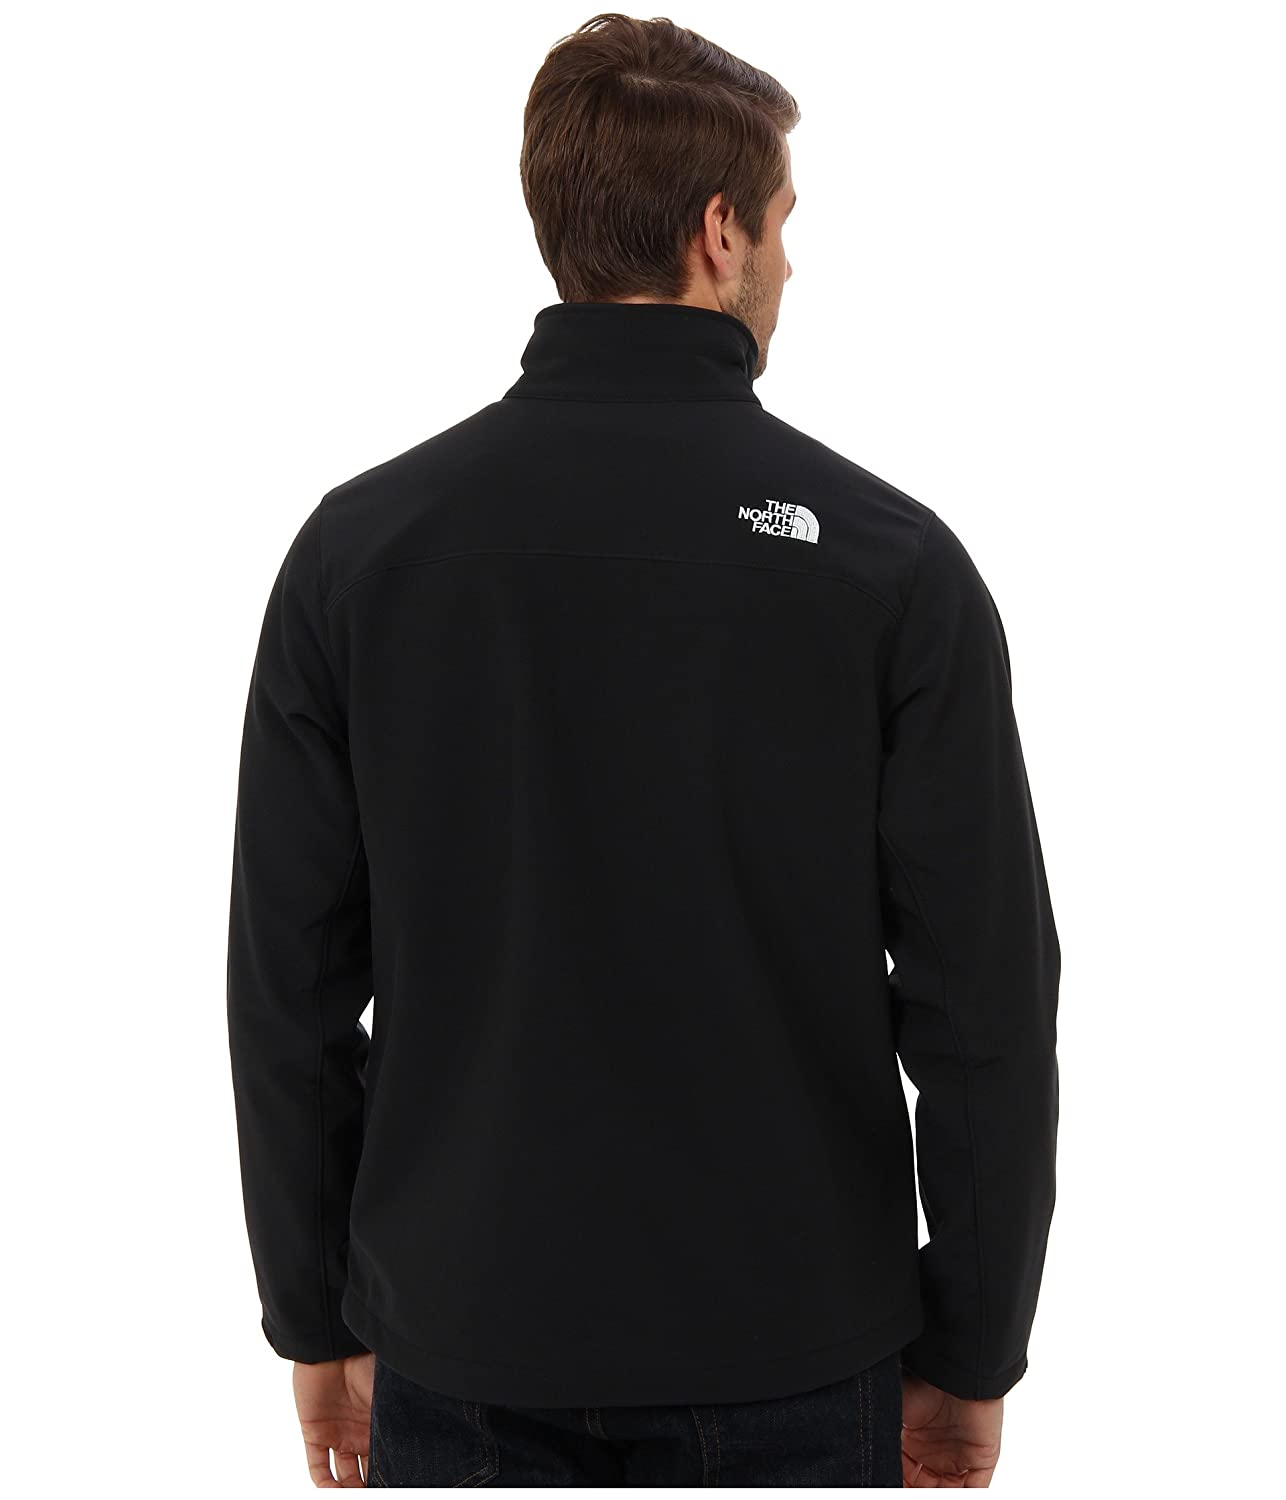 north face chubasquero mujer